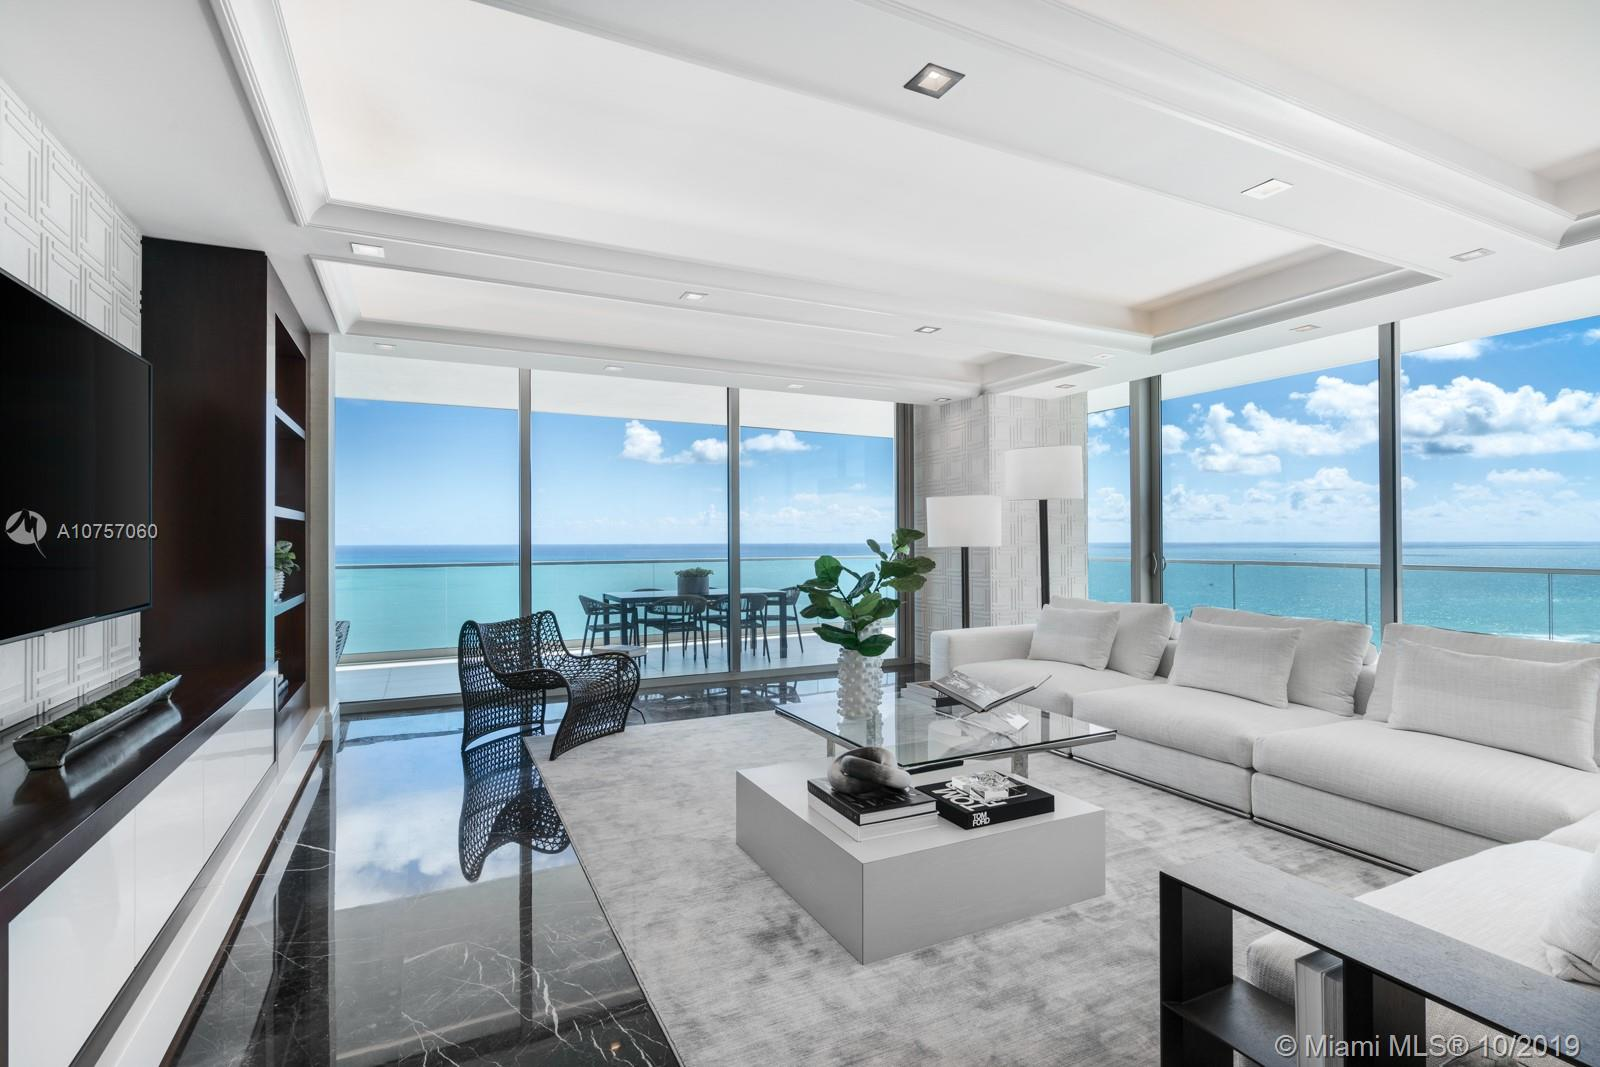 Oceana Bal Harbour's Flagship Floorplan! This South Corner of the South Tower is designer finished with the highest caliber of materials. The oceanfront flow-through residence offers 4,185 SF of living space, 3 bedrooms, Den, Family Room, 4.5 baths and more than 1,500SF of wrap-around terrace with the coveted East to West ocean & Miami skyline views. With over $1MIL in renovation upgrades including a brand new gourmet kitchen, custom bar, an enormous Master with 2 walk-in closets and an ultra modern bath, as well as stunning millwork throughout. Oceana is the top tower in Bal Harbour offering 400 feet of beachfront property, 24-hour concierge services, poolside restaurant, tennis, spectacular spa, gym, resort style pool with cabanas and more. And the 01 line is its most desired plan.